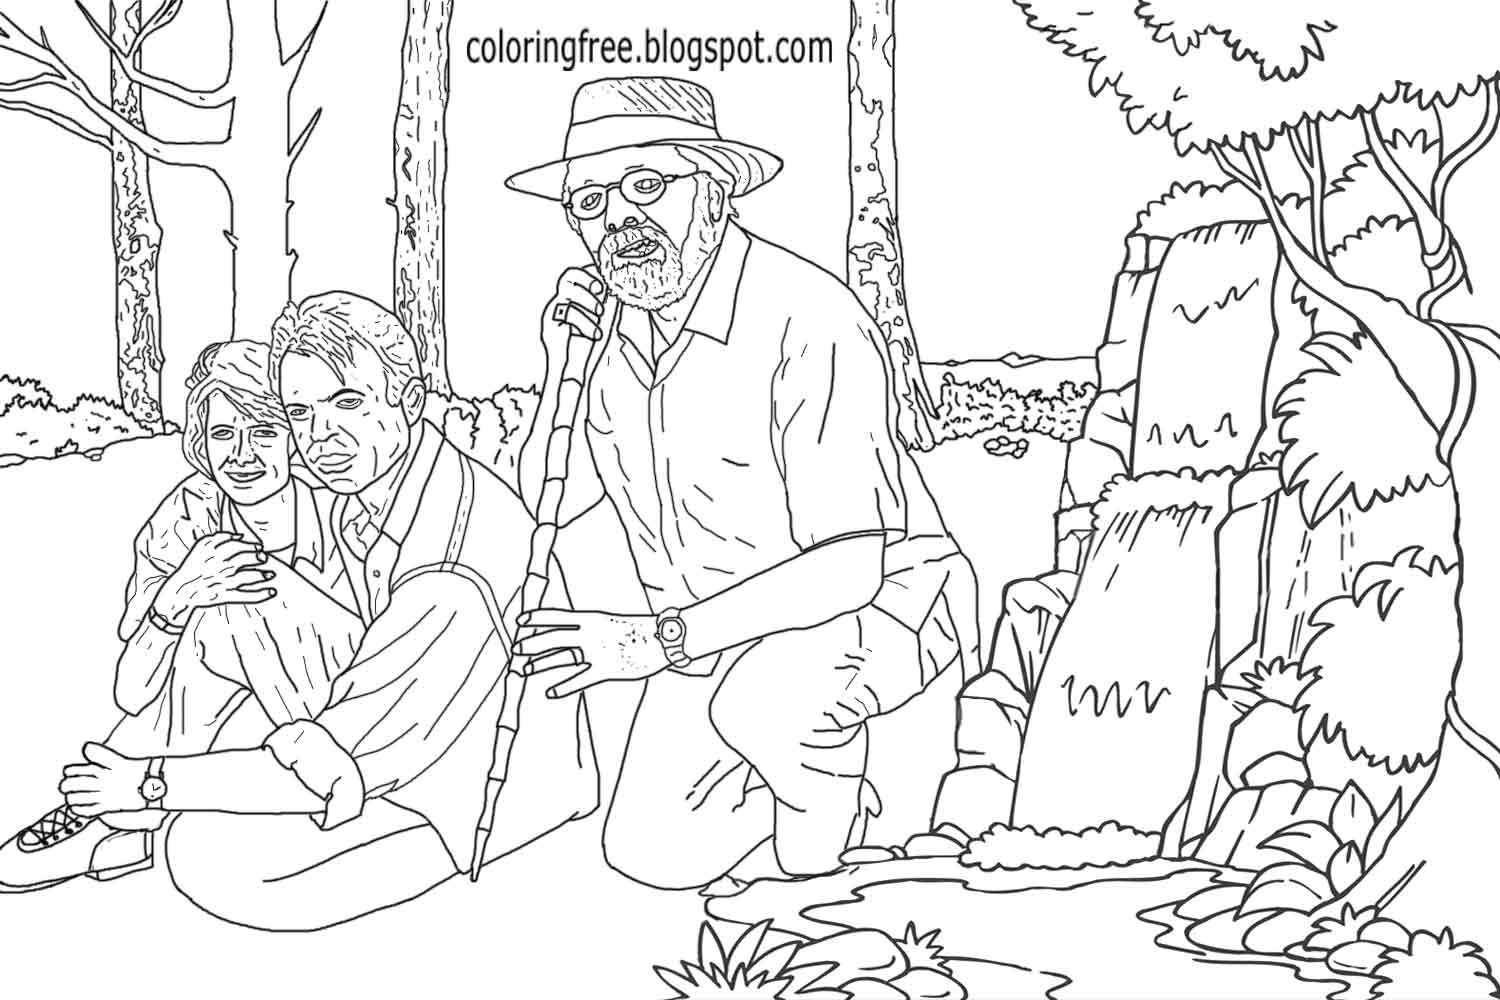 1500x1000 Free Coloring Pages Printable Pictures To Color Kids Drawing Ideas